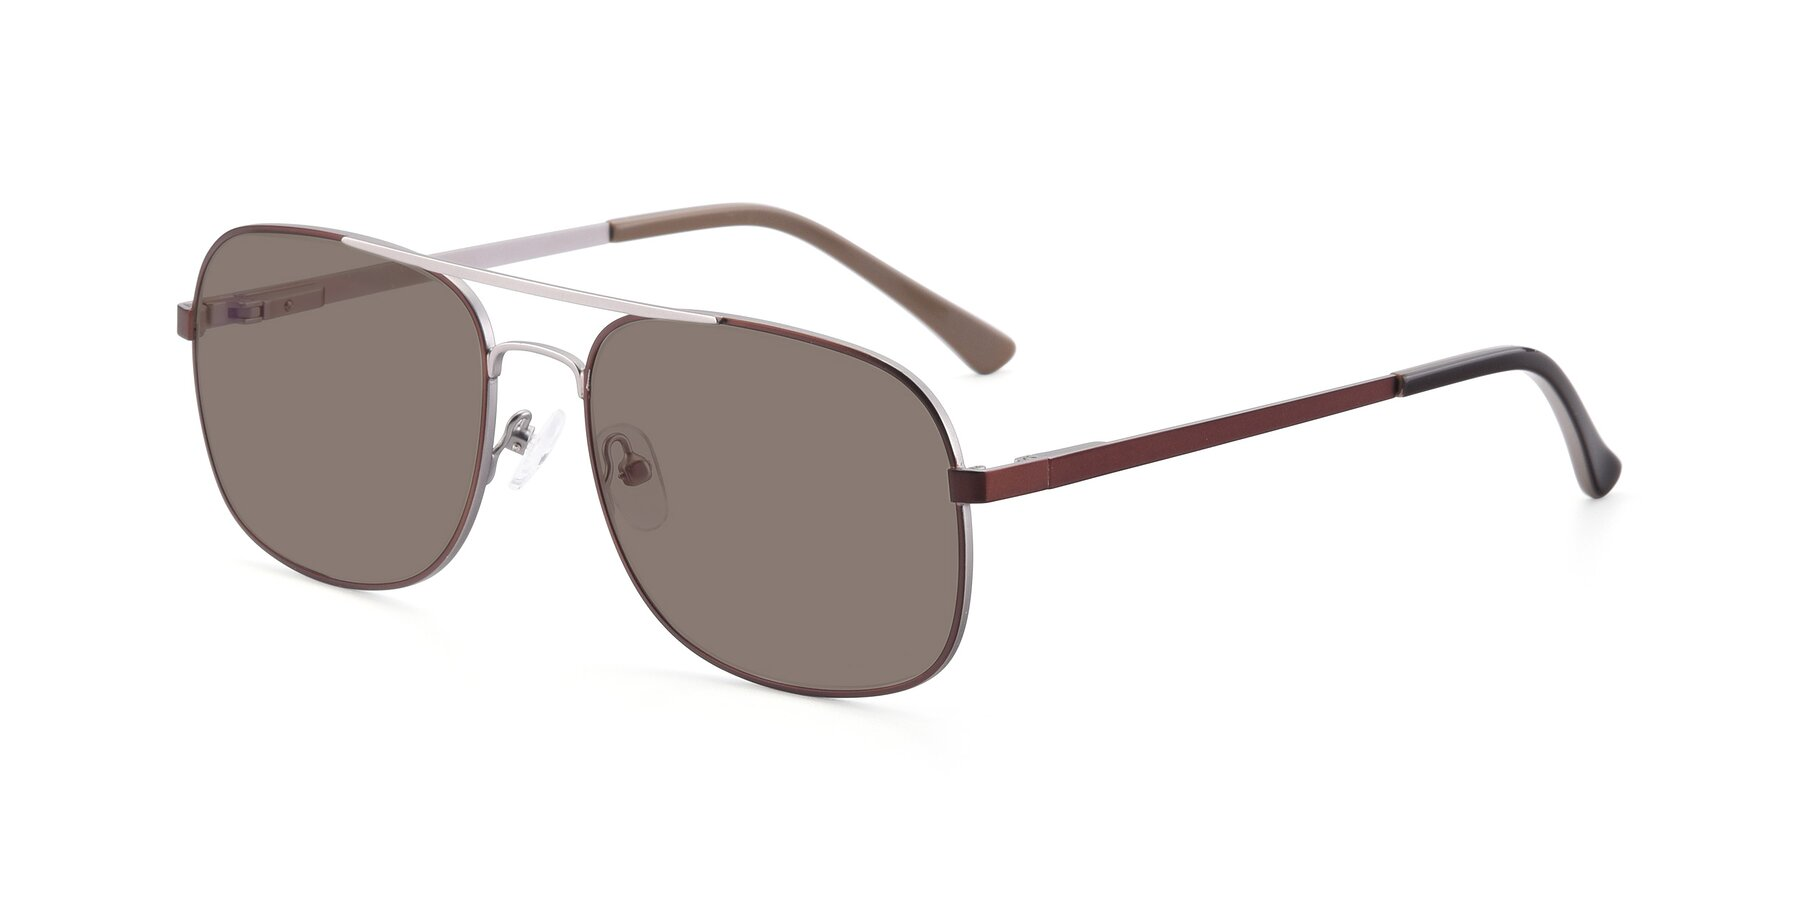 Angle of 9487 in Brown-Silver with Medium Brown Tinted Lenses